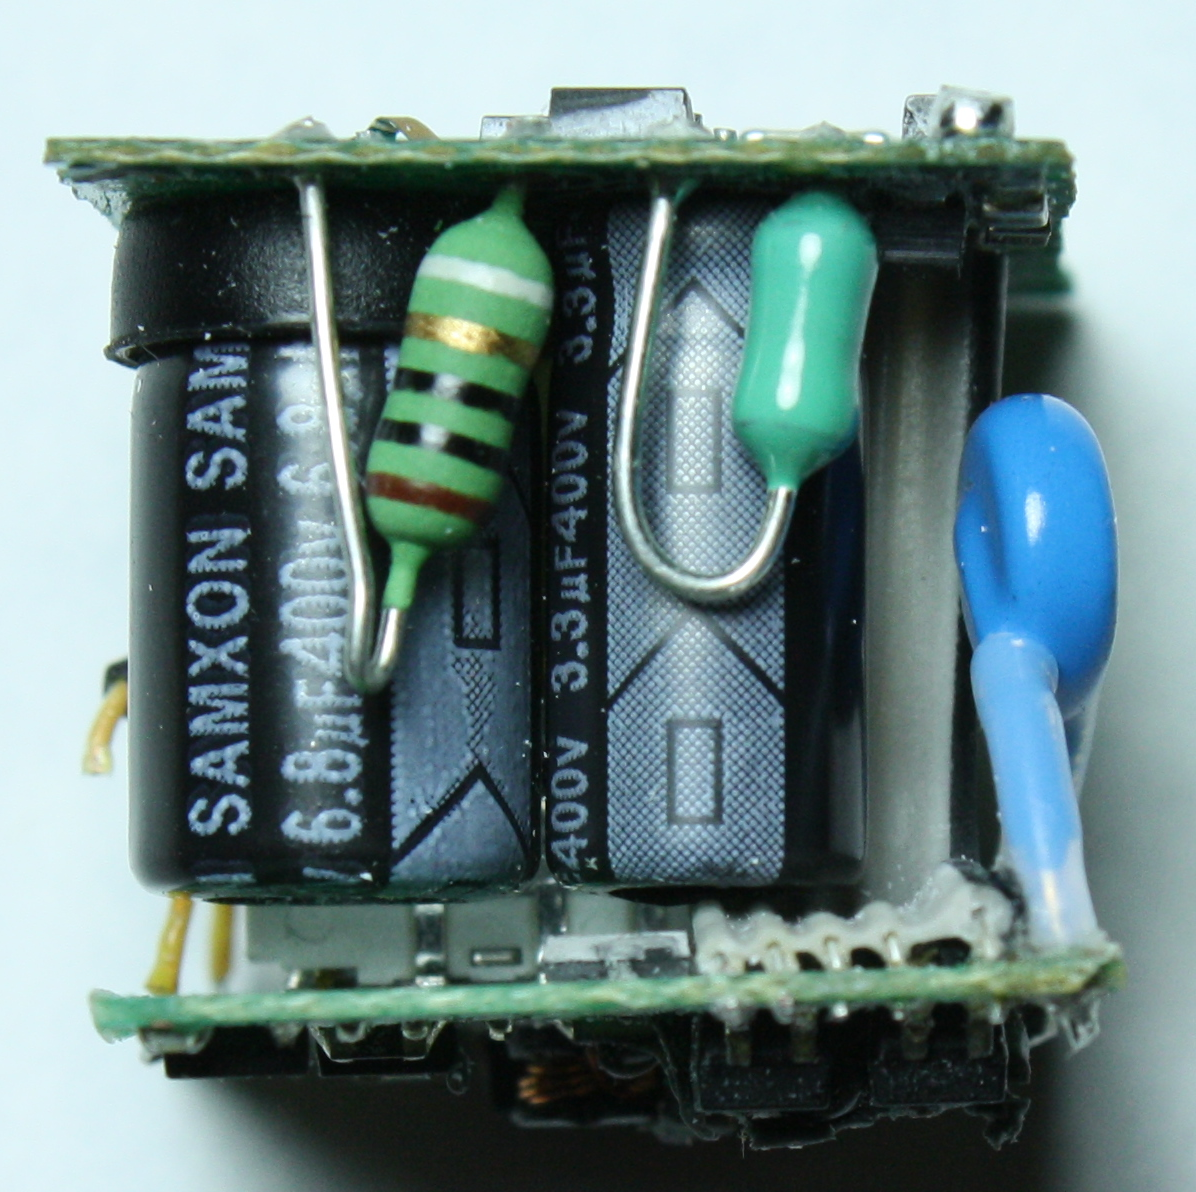 Apple Iphone Charger Teardown Quality In A Tiny Expensive Package This Is Regulated Dc Power Supply With Short Circuit Protection And Showing The Fusible Resistor Striped Inductor Green